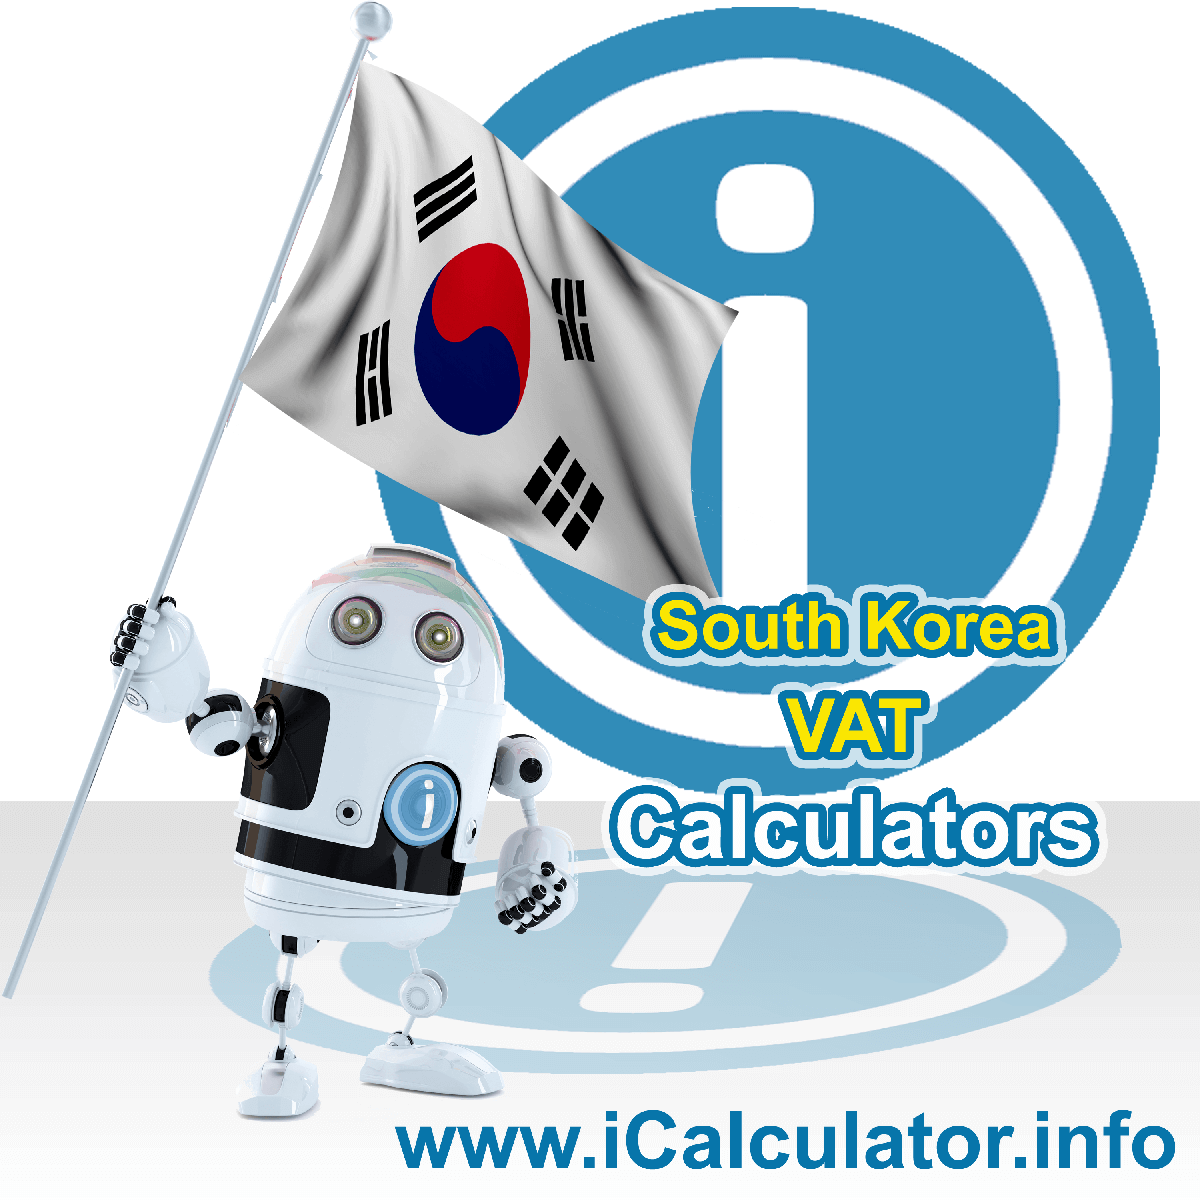 South Korea VAT Calculator. This image shows the South Korea flag and information relating to the VAT formula used for calculating Value Added Tax in South Korea using the South Korea VAT Calculator in 2020